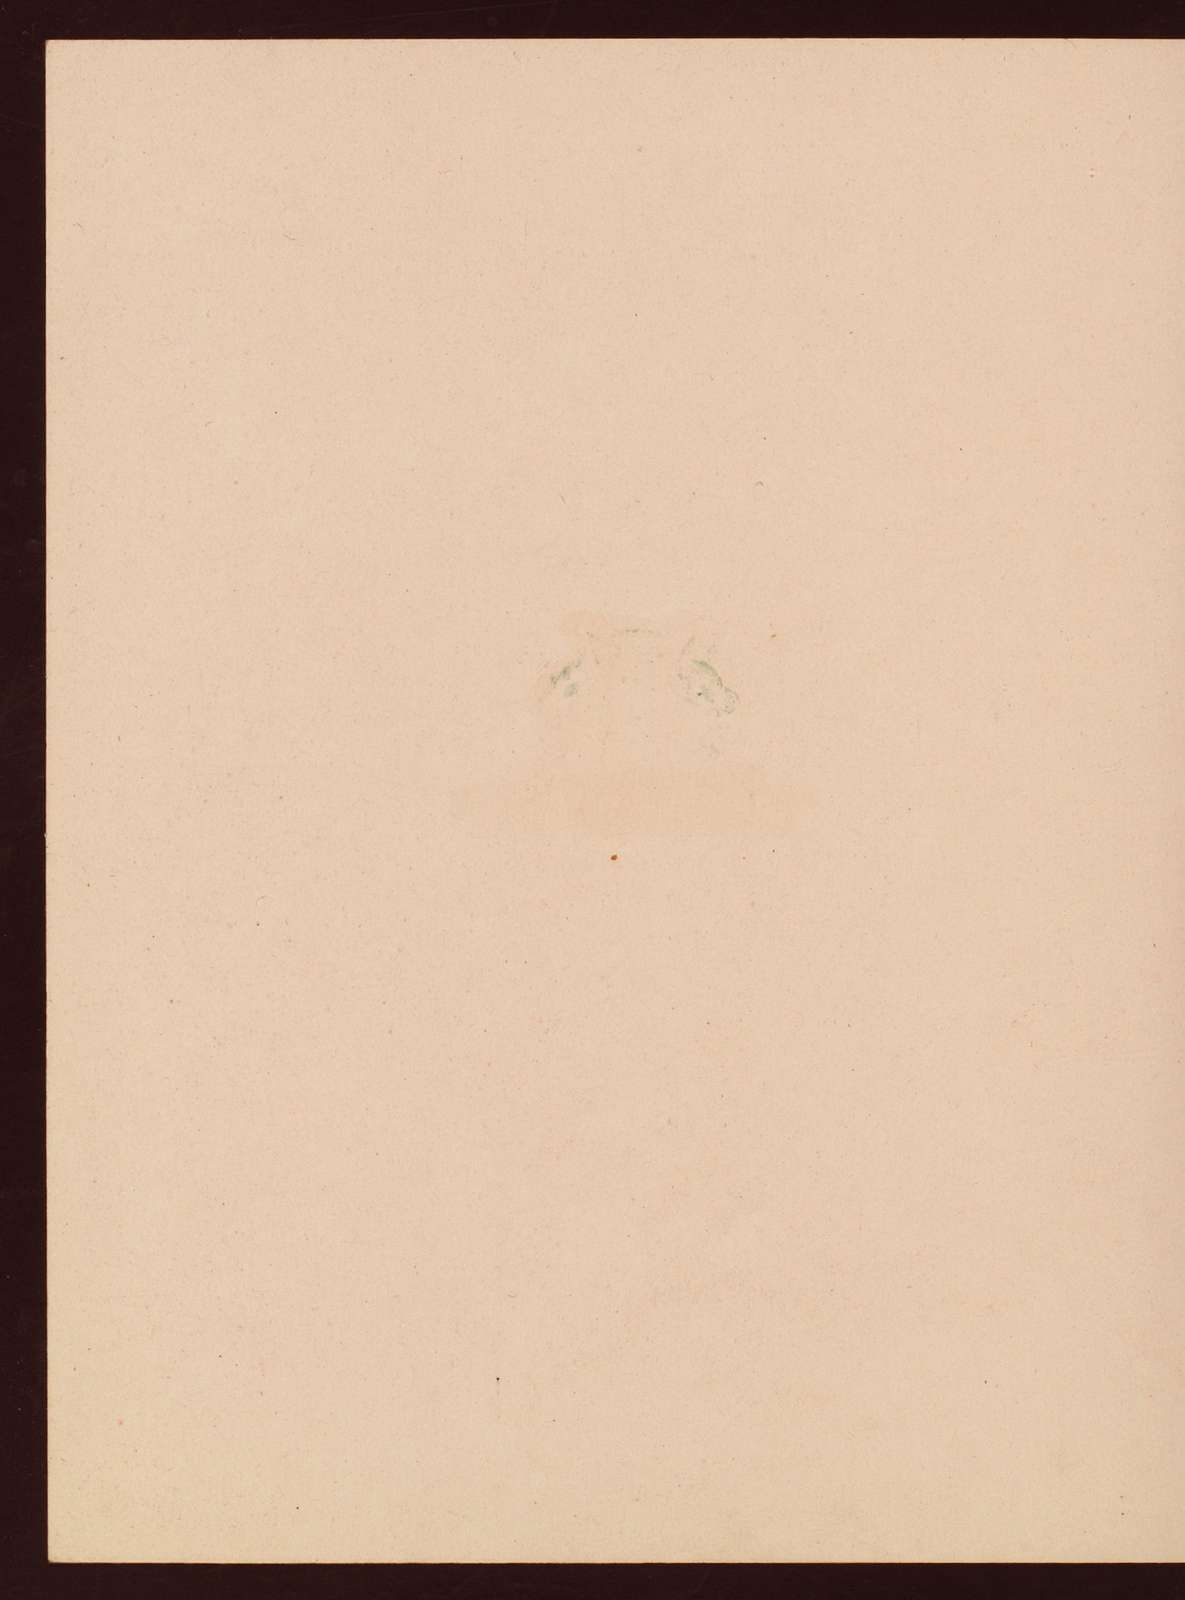 """BANQUET [held by] AMERICAN COTTON MANUFACTURERS ASOCIATION [at] """"KENILWORTH INN, N.C."""" (HOTEL;)"""